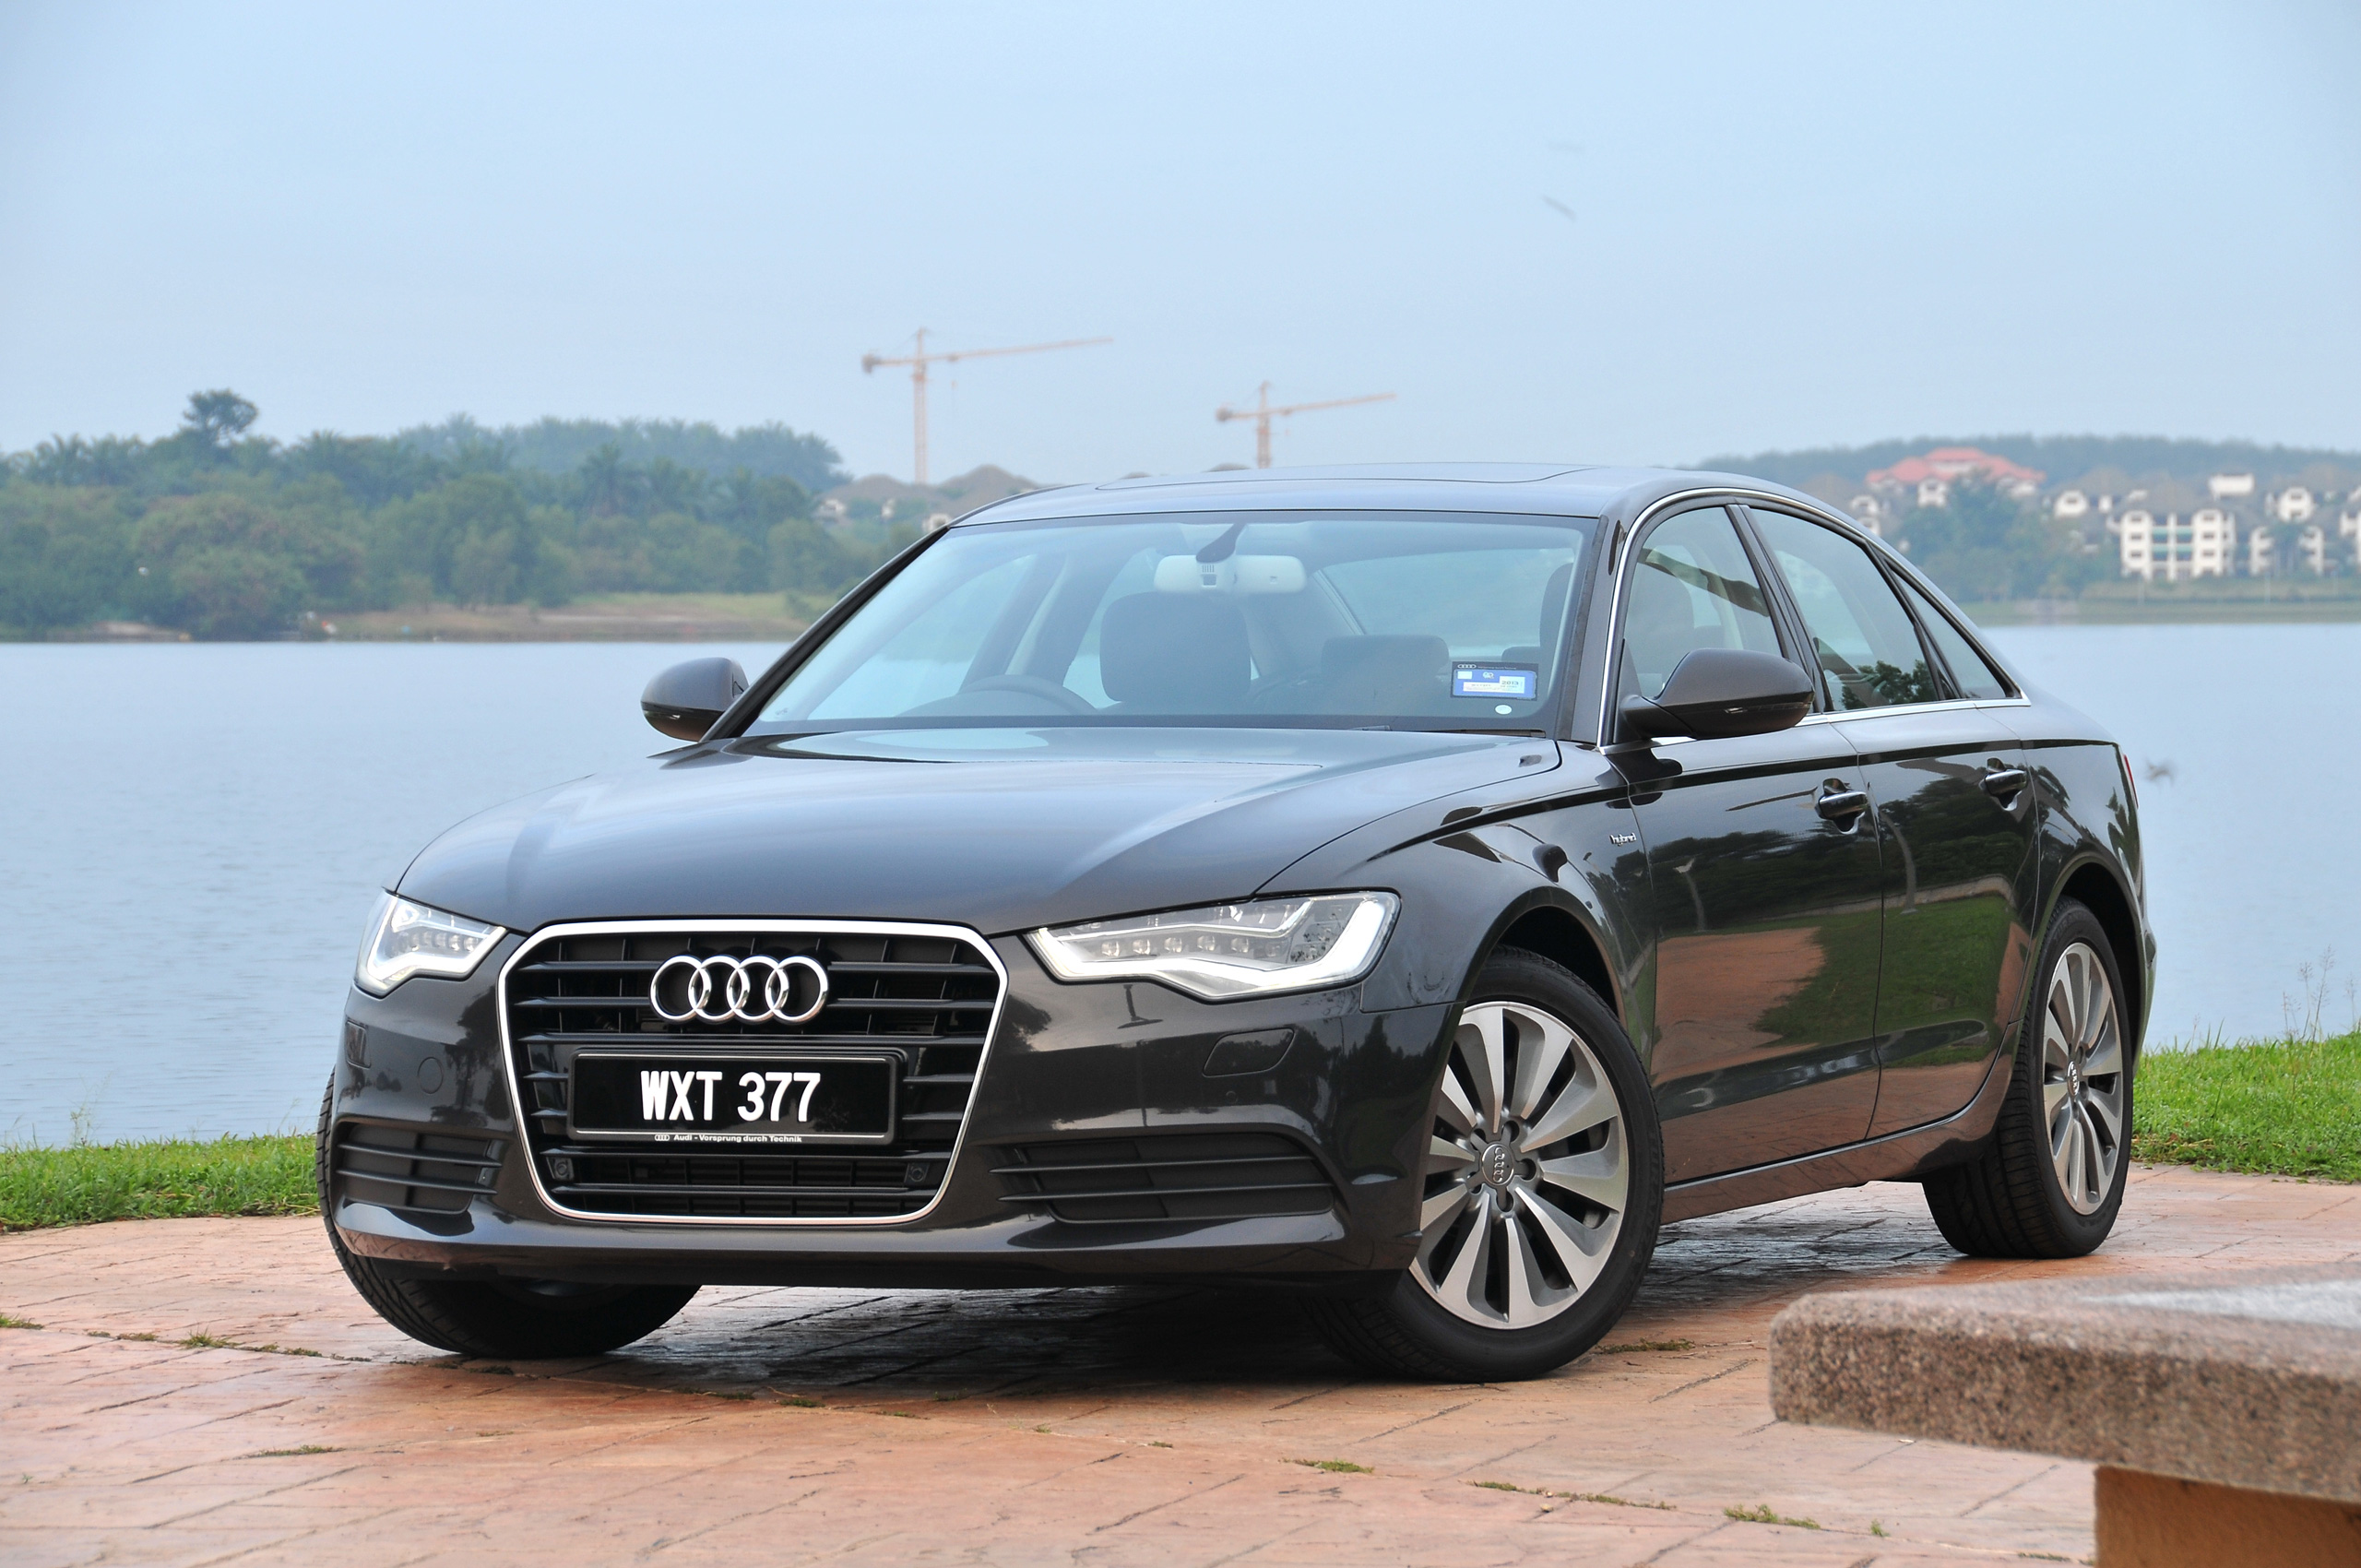 driven new audi a6 hybrid full test drive review sure. Black Bedroom Furniture Sets. Home Design Ideas